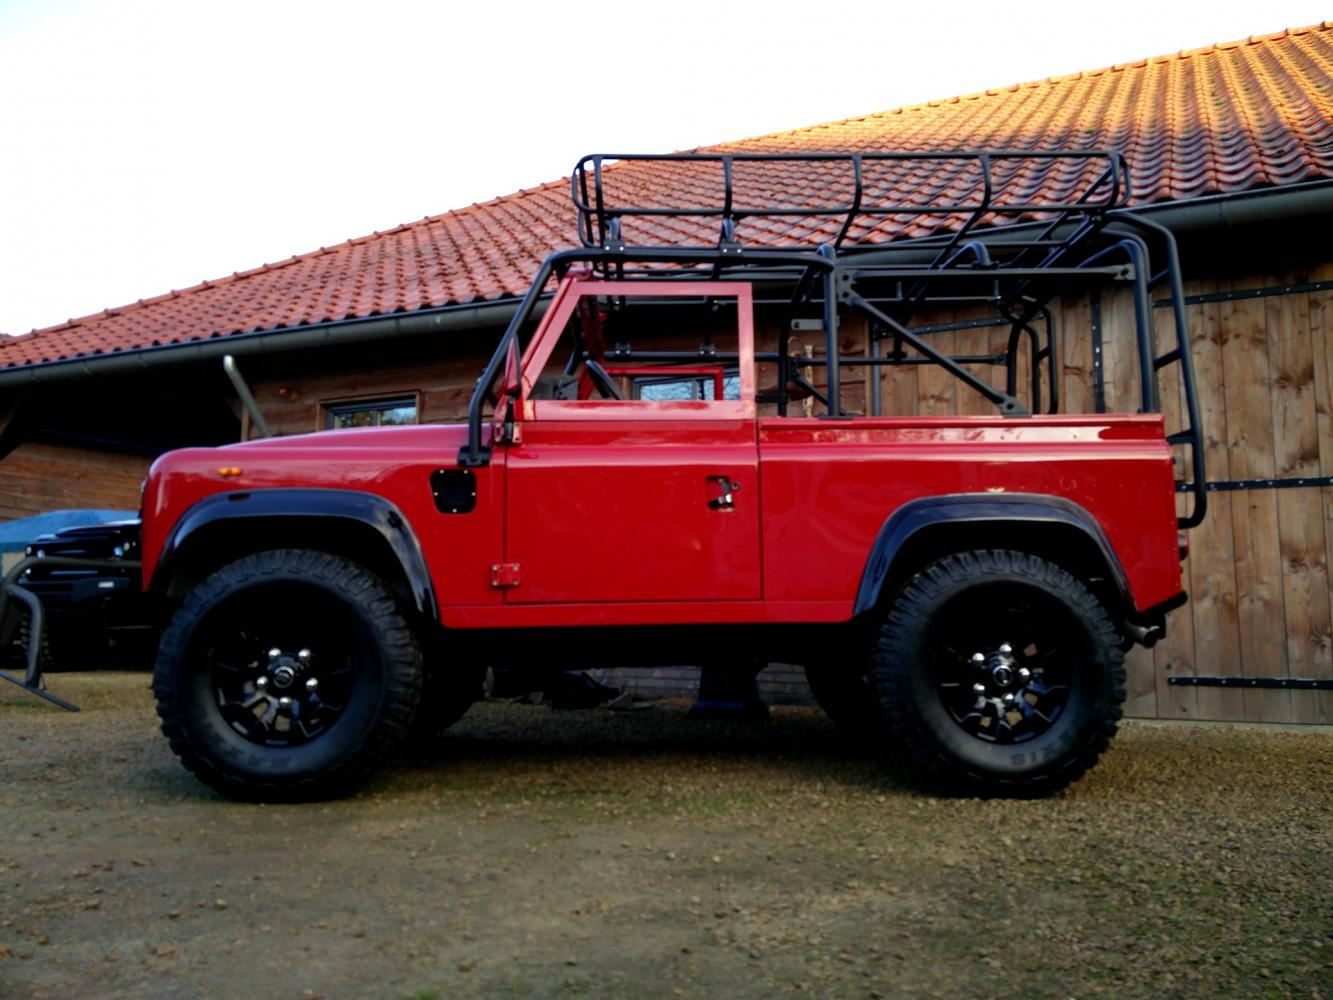 Click image for larger version  Name:1992 LR LHD Defender 90 Red 200 Tdi A day 10  left side low.jpg Views:166 Size:151.6 KB ID:322369